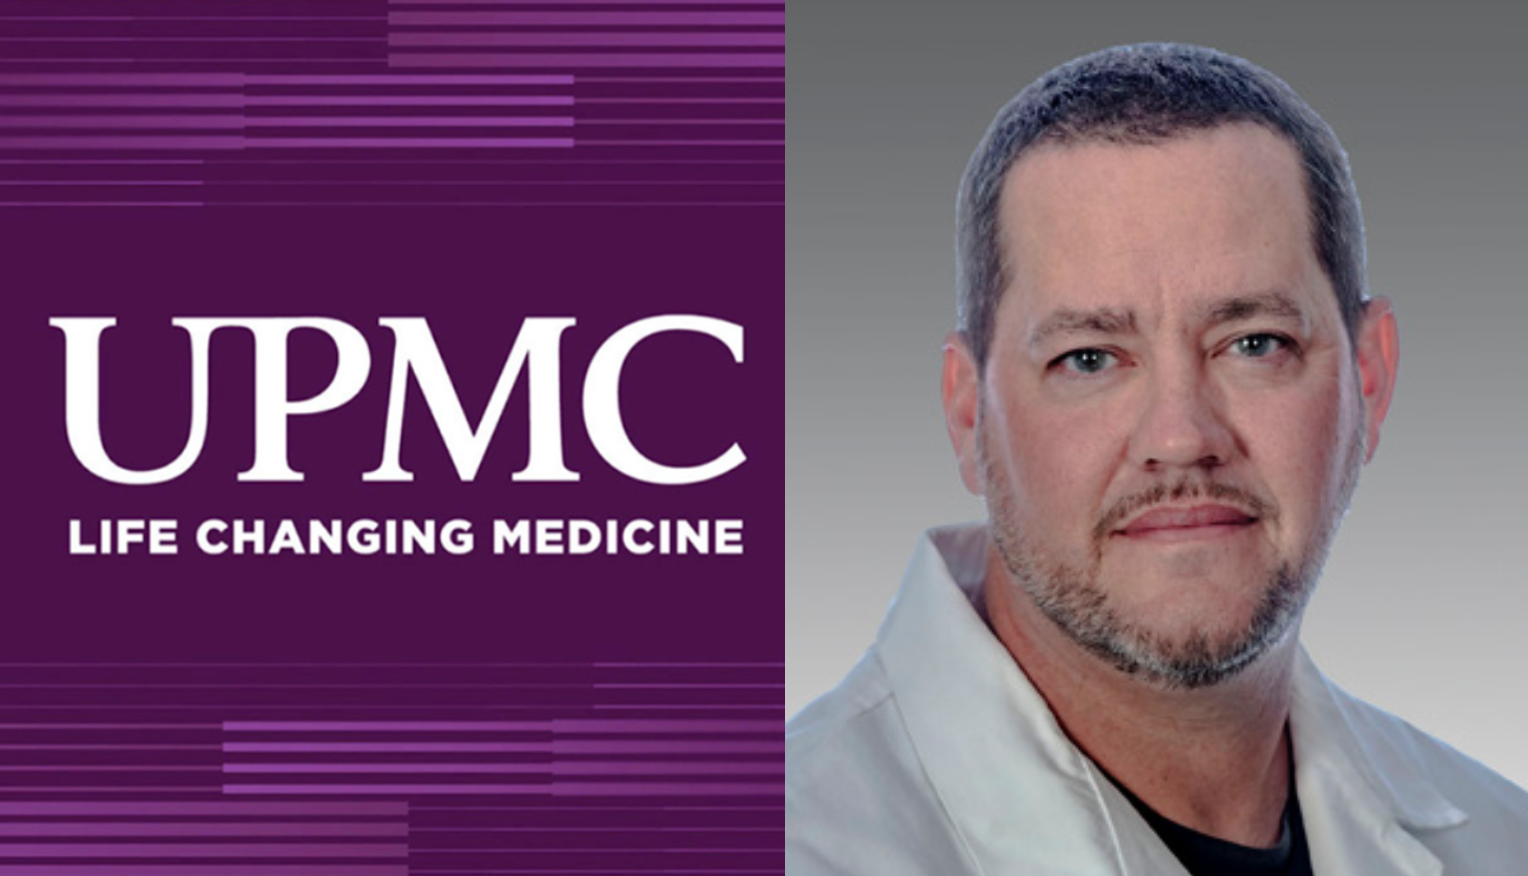 UPMC Cardiologist Encourages Men to Take Their Heart Health Seriously